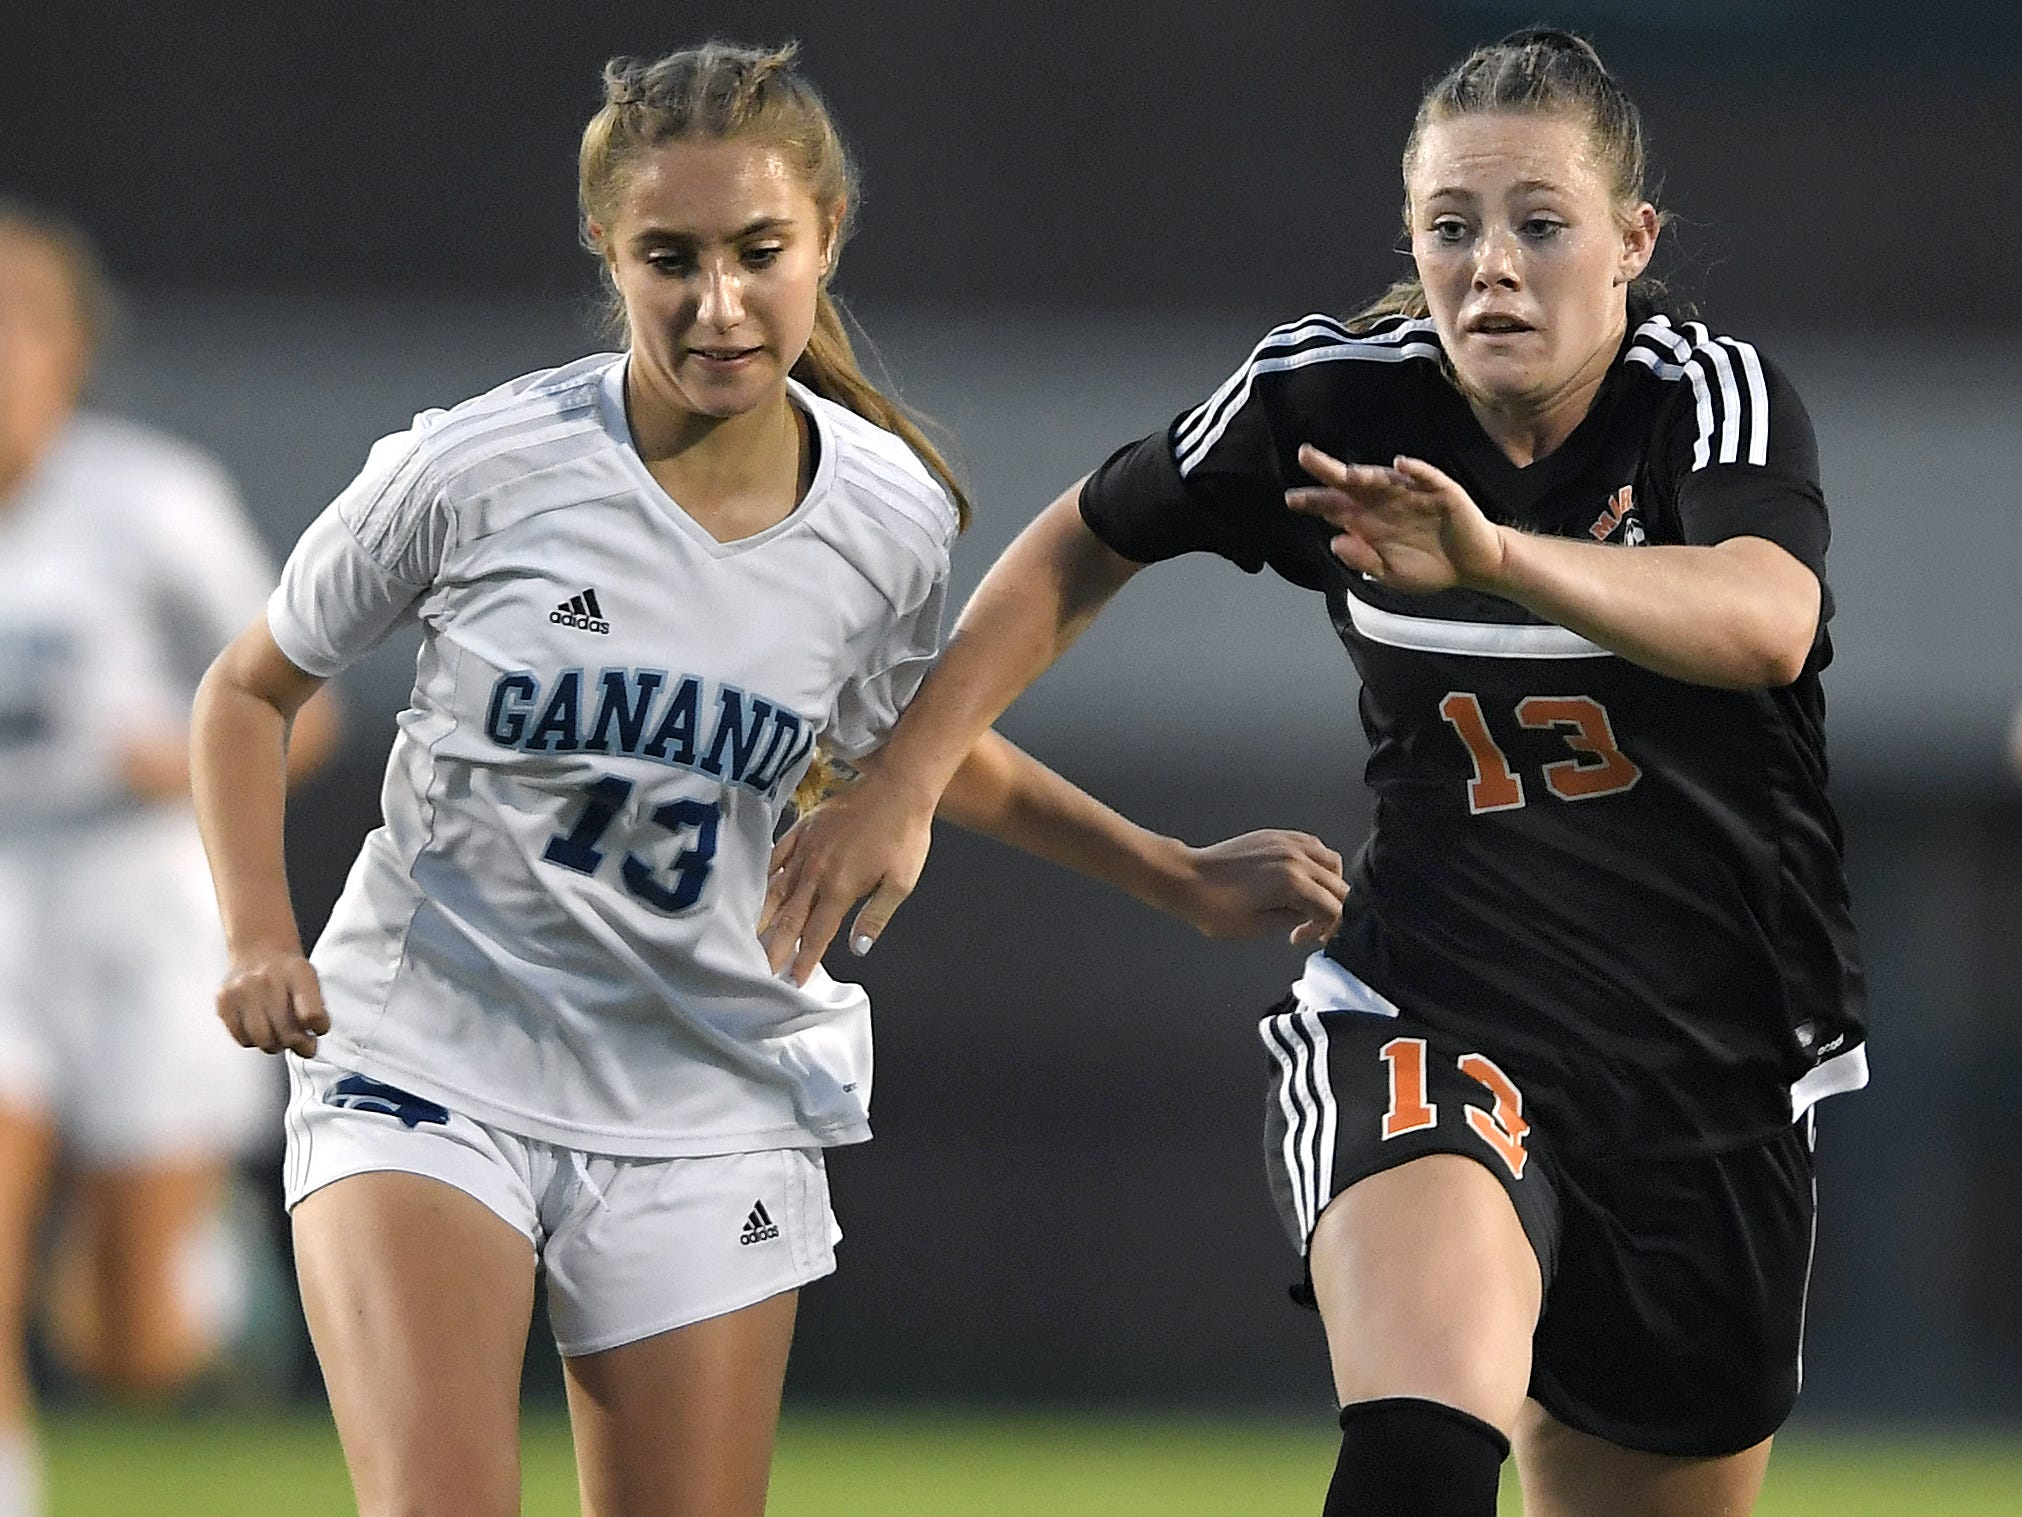 Marion's Chloe DeLyser, right, shown in a game against Gananda earlier this season, scored five goals on Friday night to set the state record for most goals in a career (256) and season (75).